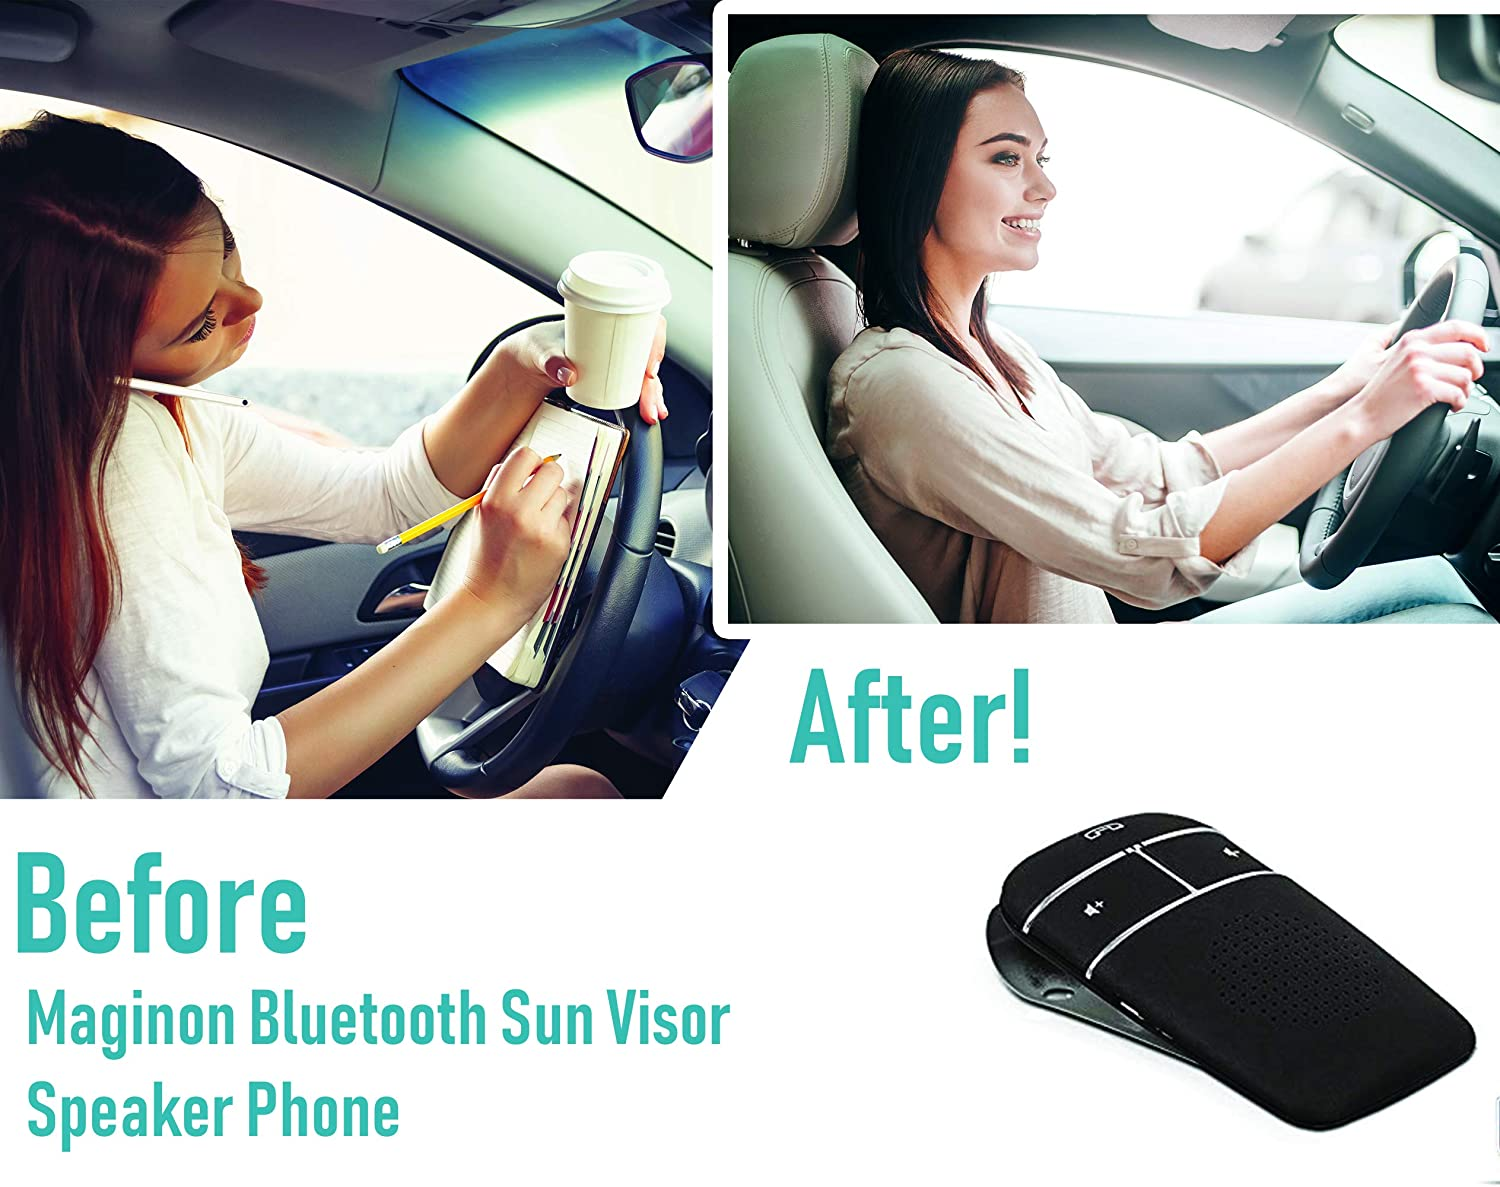 Amazon.com: Maginon Bluetooth Car Sun Visor Speakerphone Clip on Kit for iPhone and Android Smart Phones Safe Hands Free Calling While Driving: Home Audio & ...